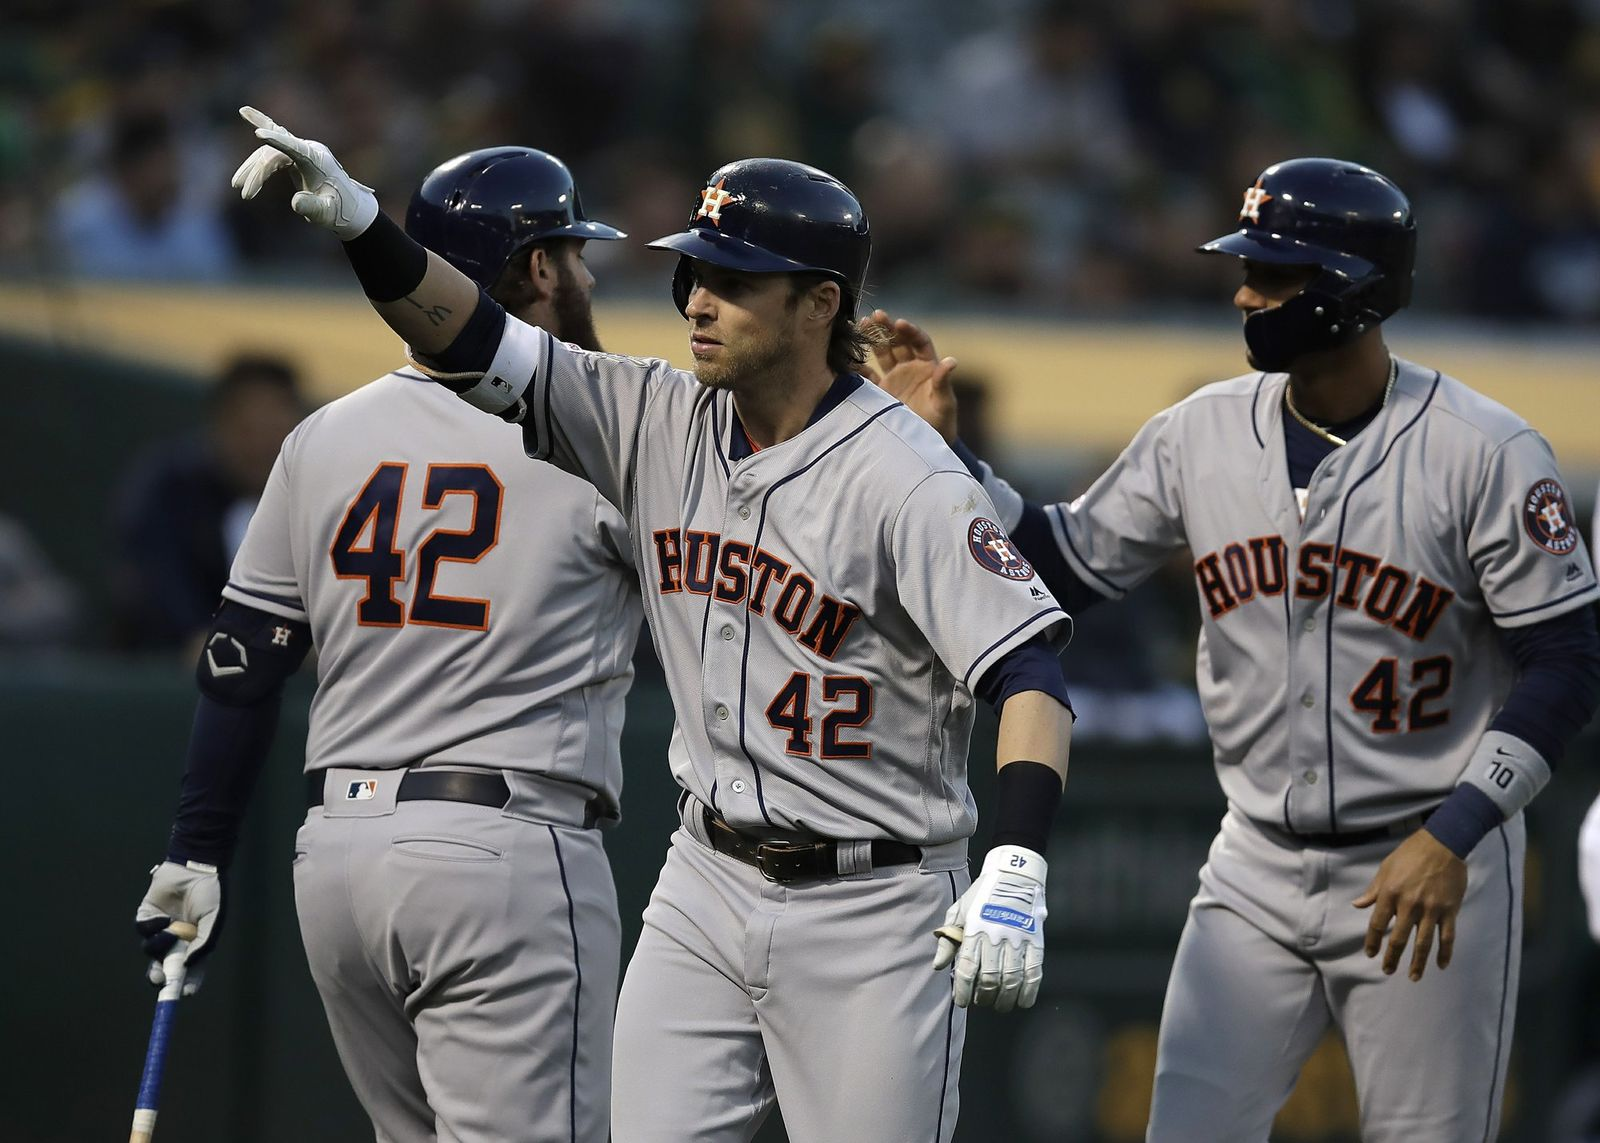 Houston Astros' Josh Reddick, center, celebrates after hitting a two-run home run off Oakland Athletics' Marco Estrada in the second inning of a baseball game, Tuesday, April 16, 2019, in Oakland, Calif. (AP Photo/Ben Margot)